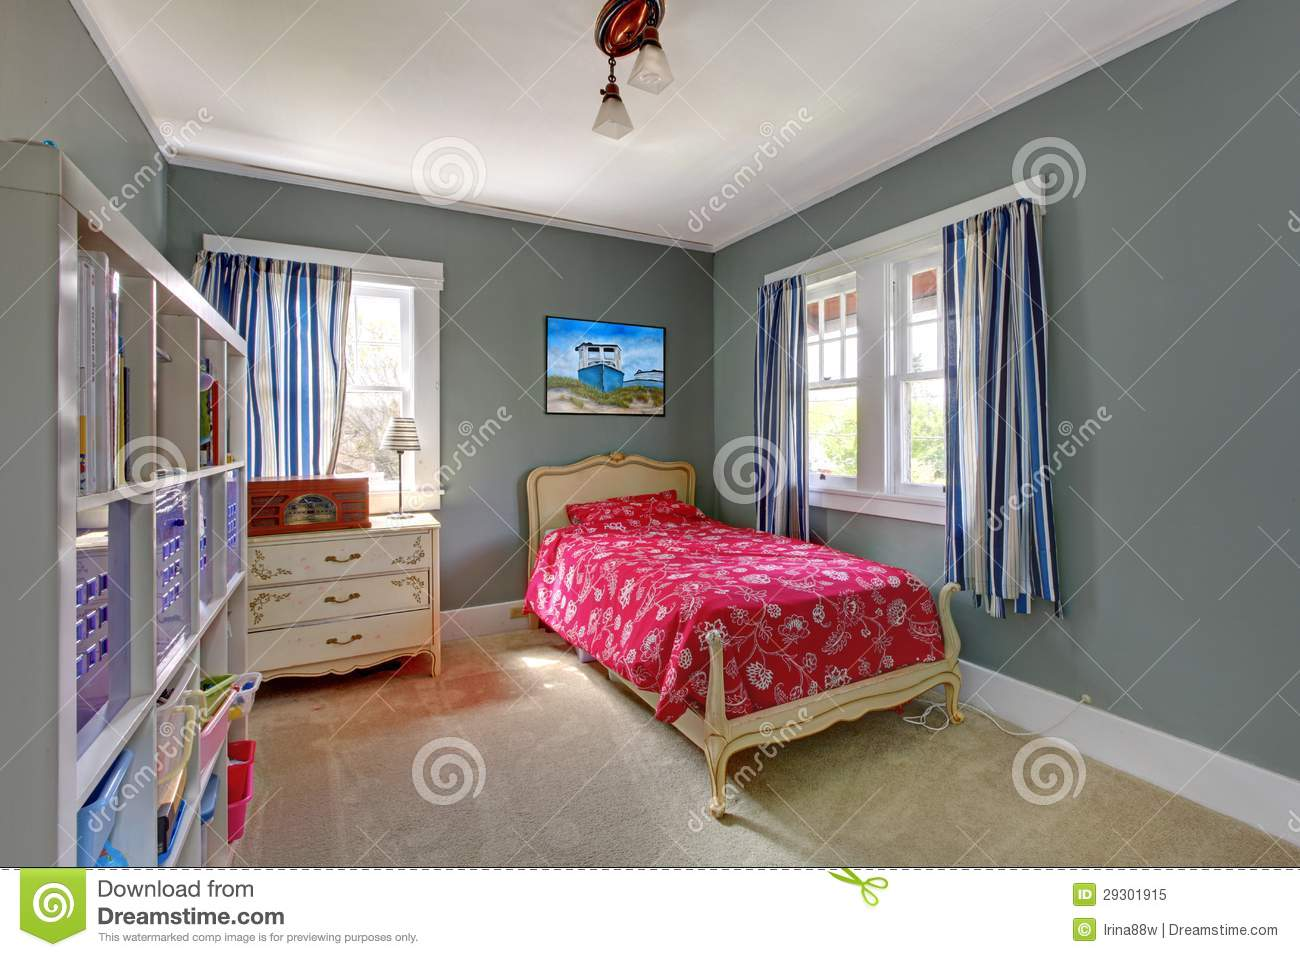 Kids bedroom with red bed and grey walls royalty free stock photo image 29301915 - Kids bedroom photo ...